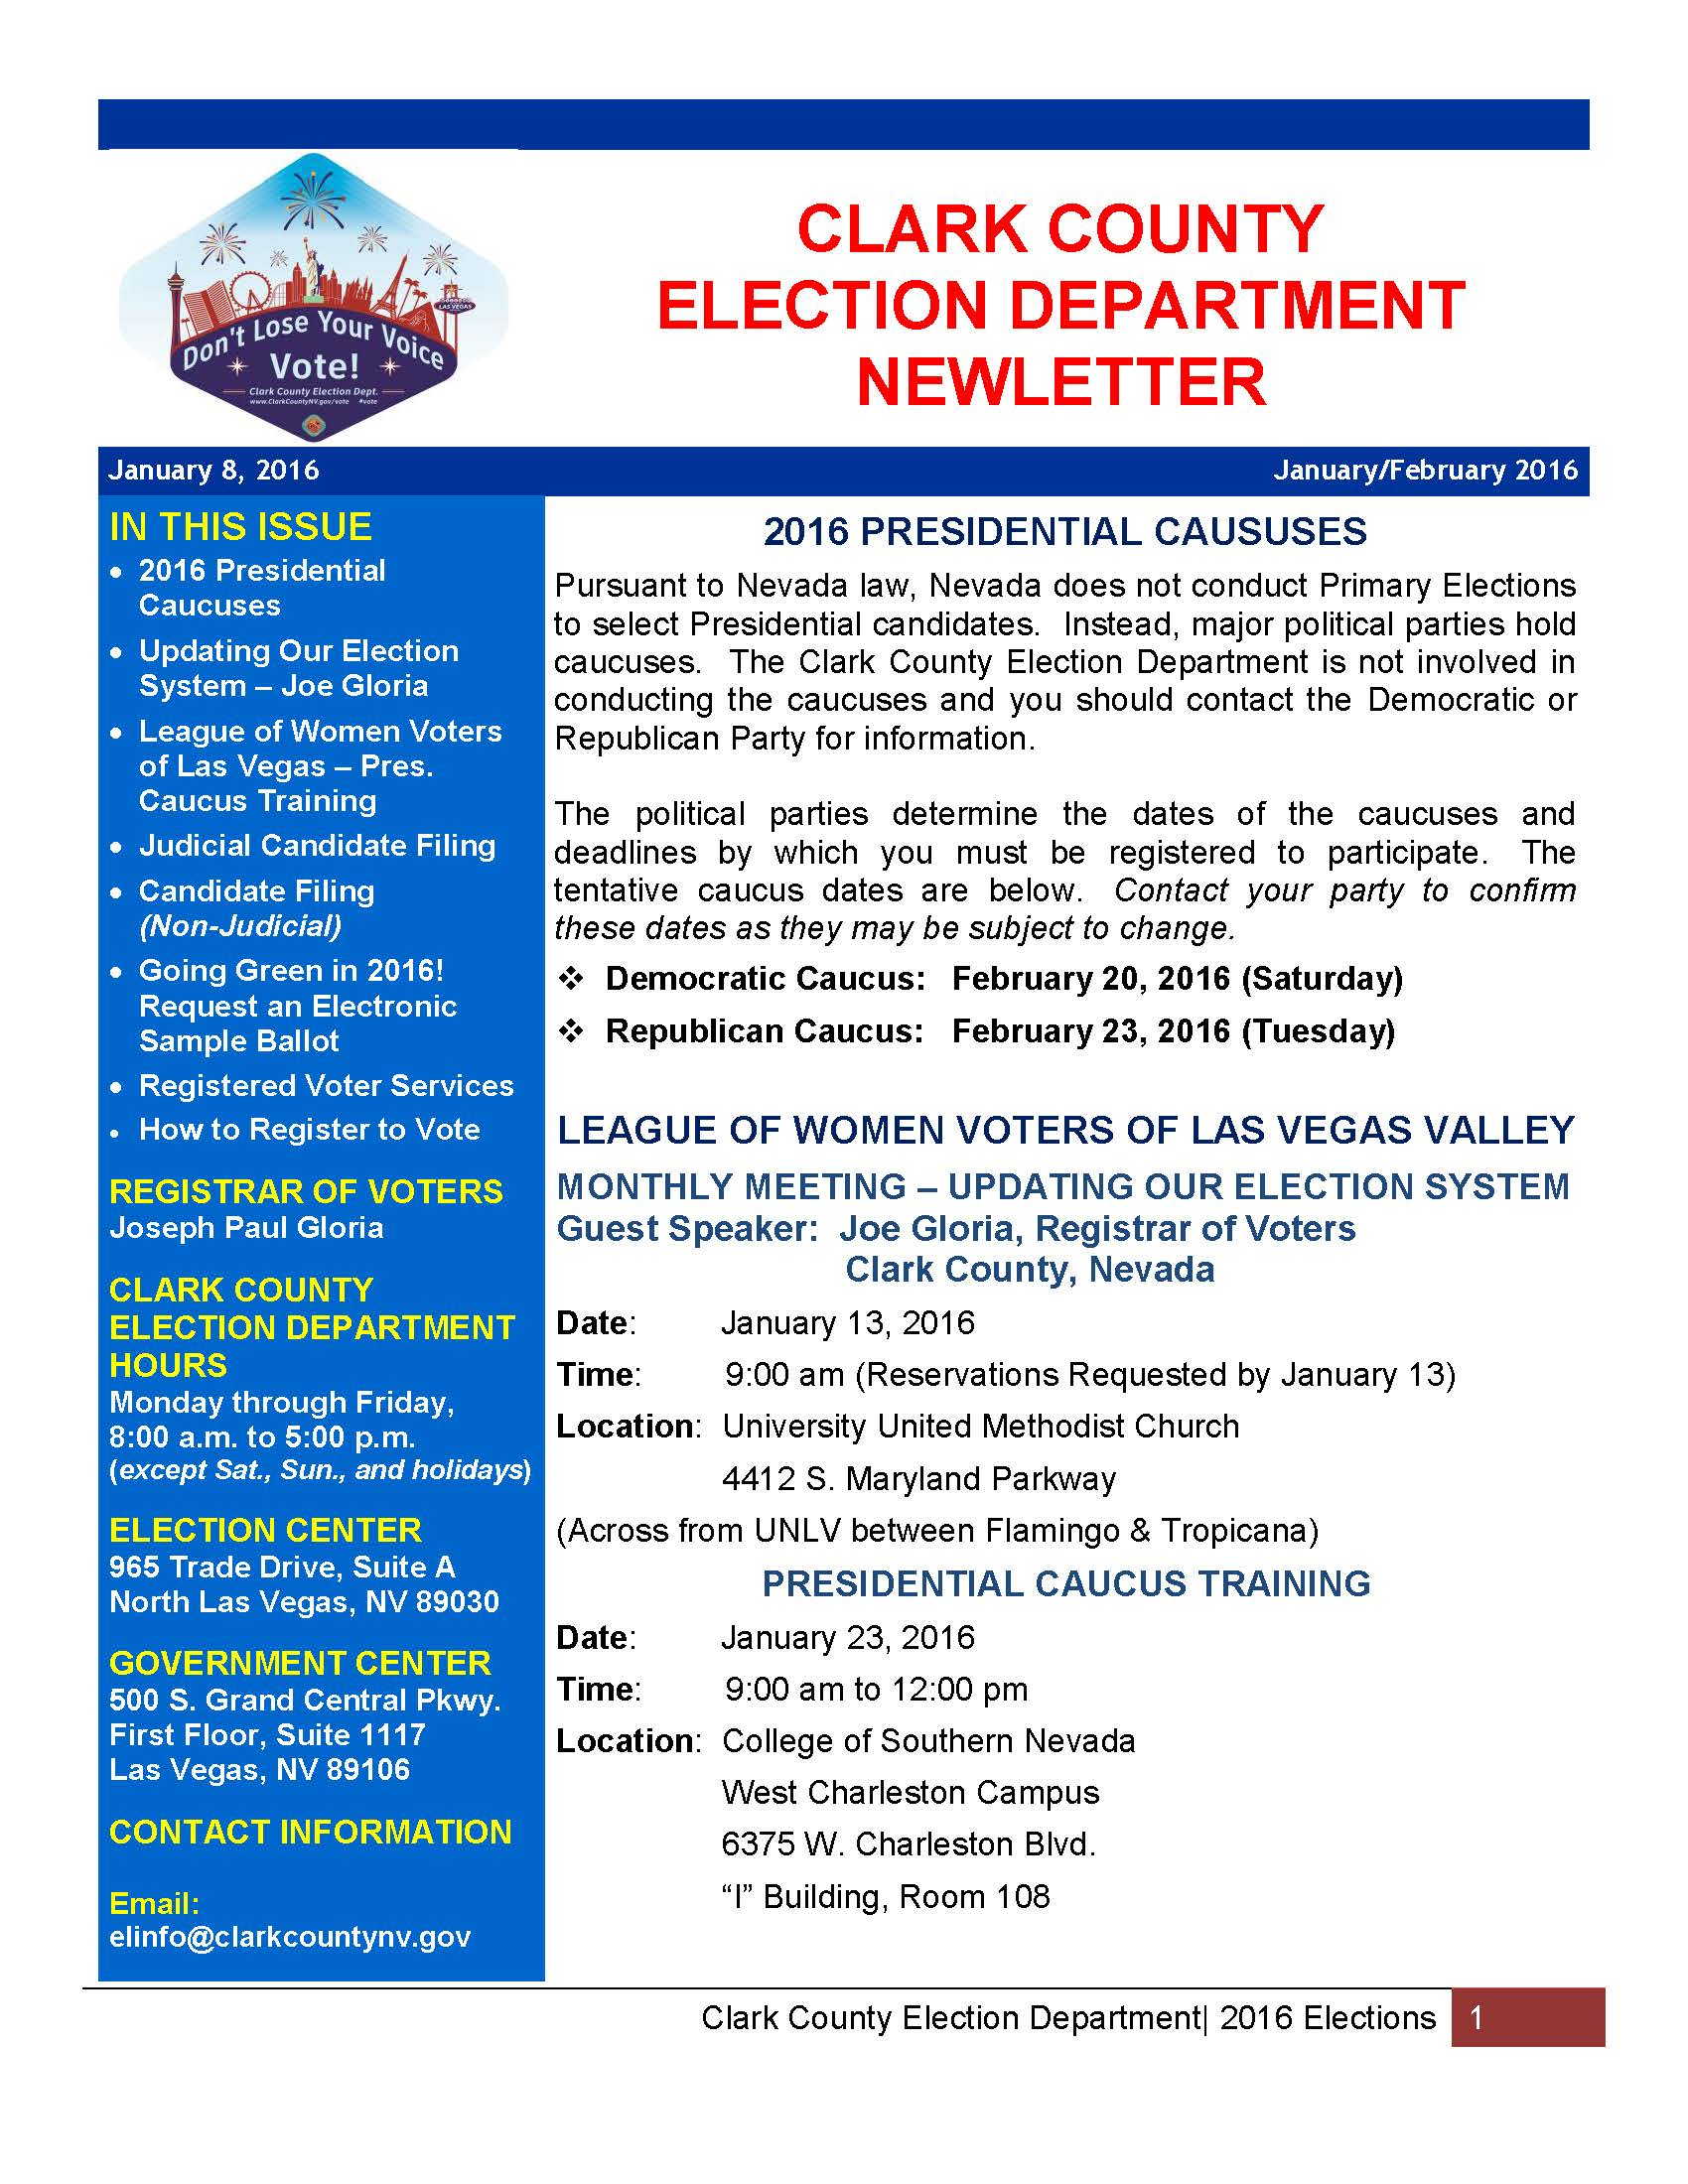 Clark County Elections Dept Newsletter | League of Women ...